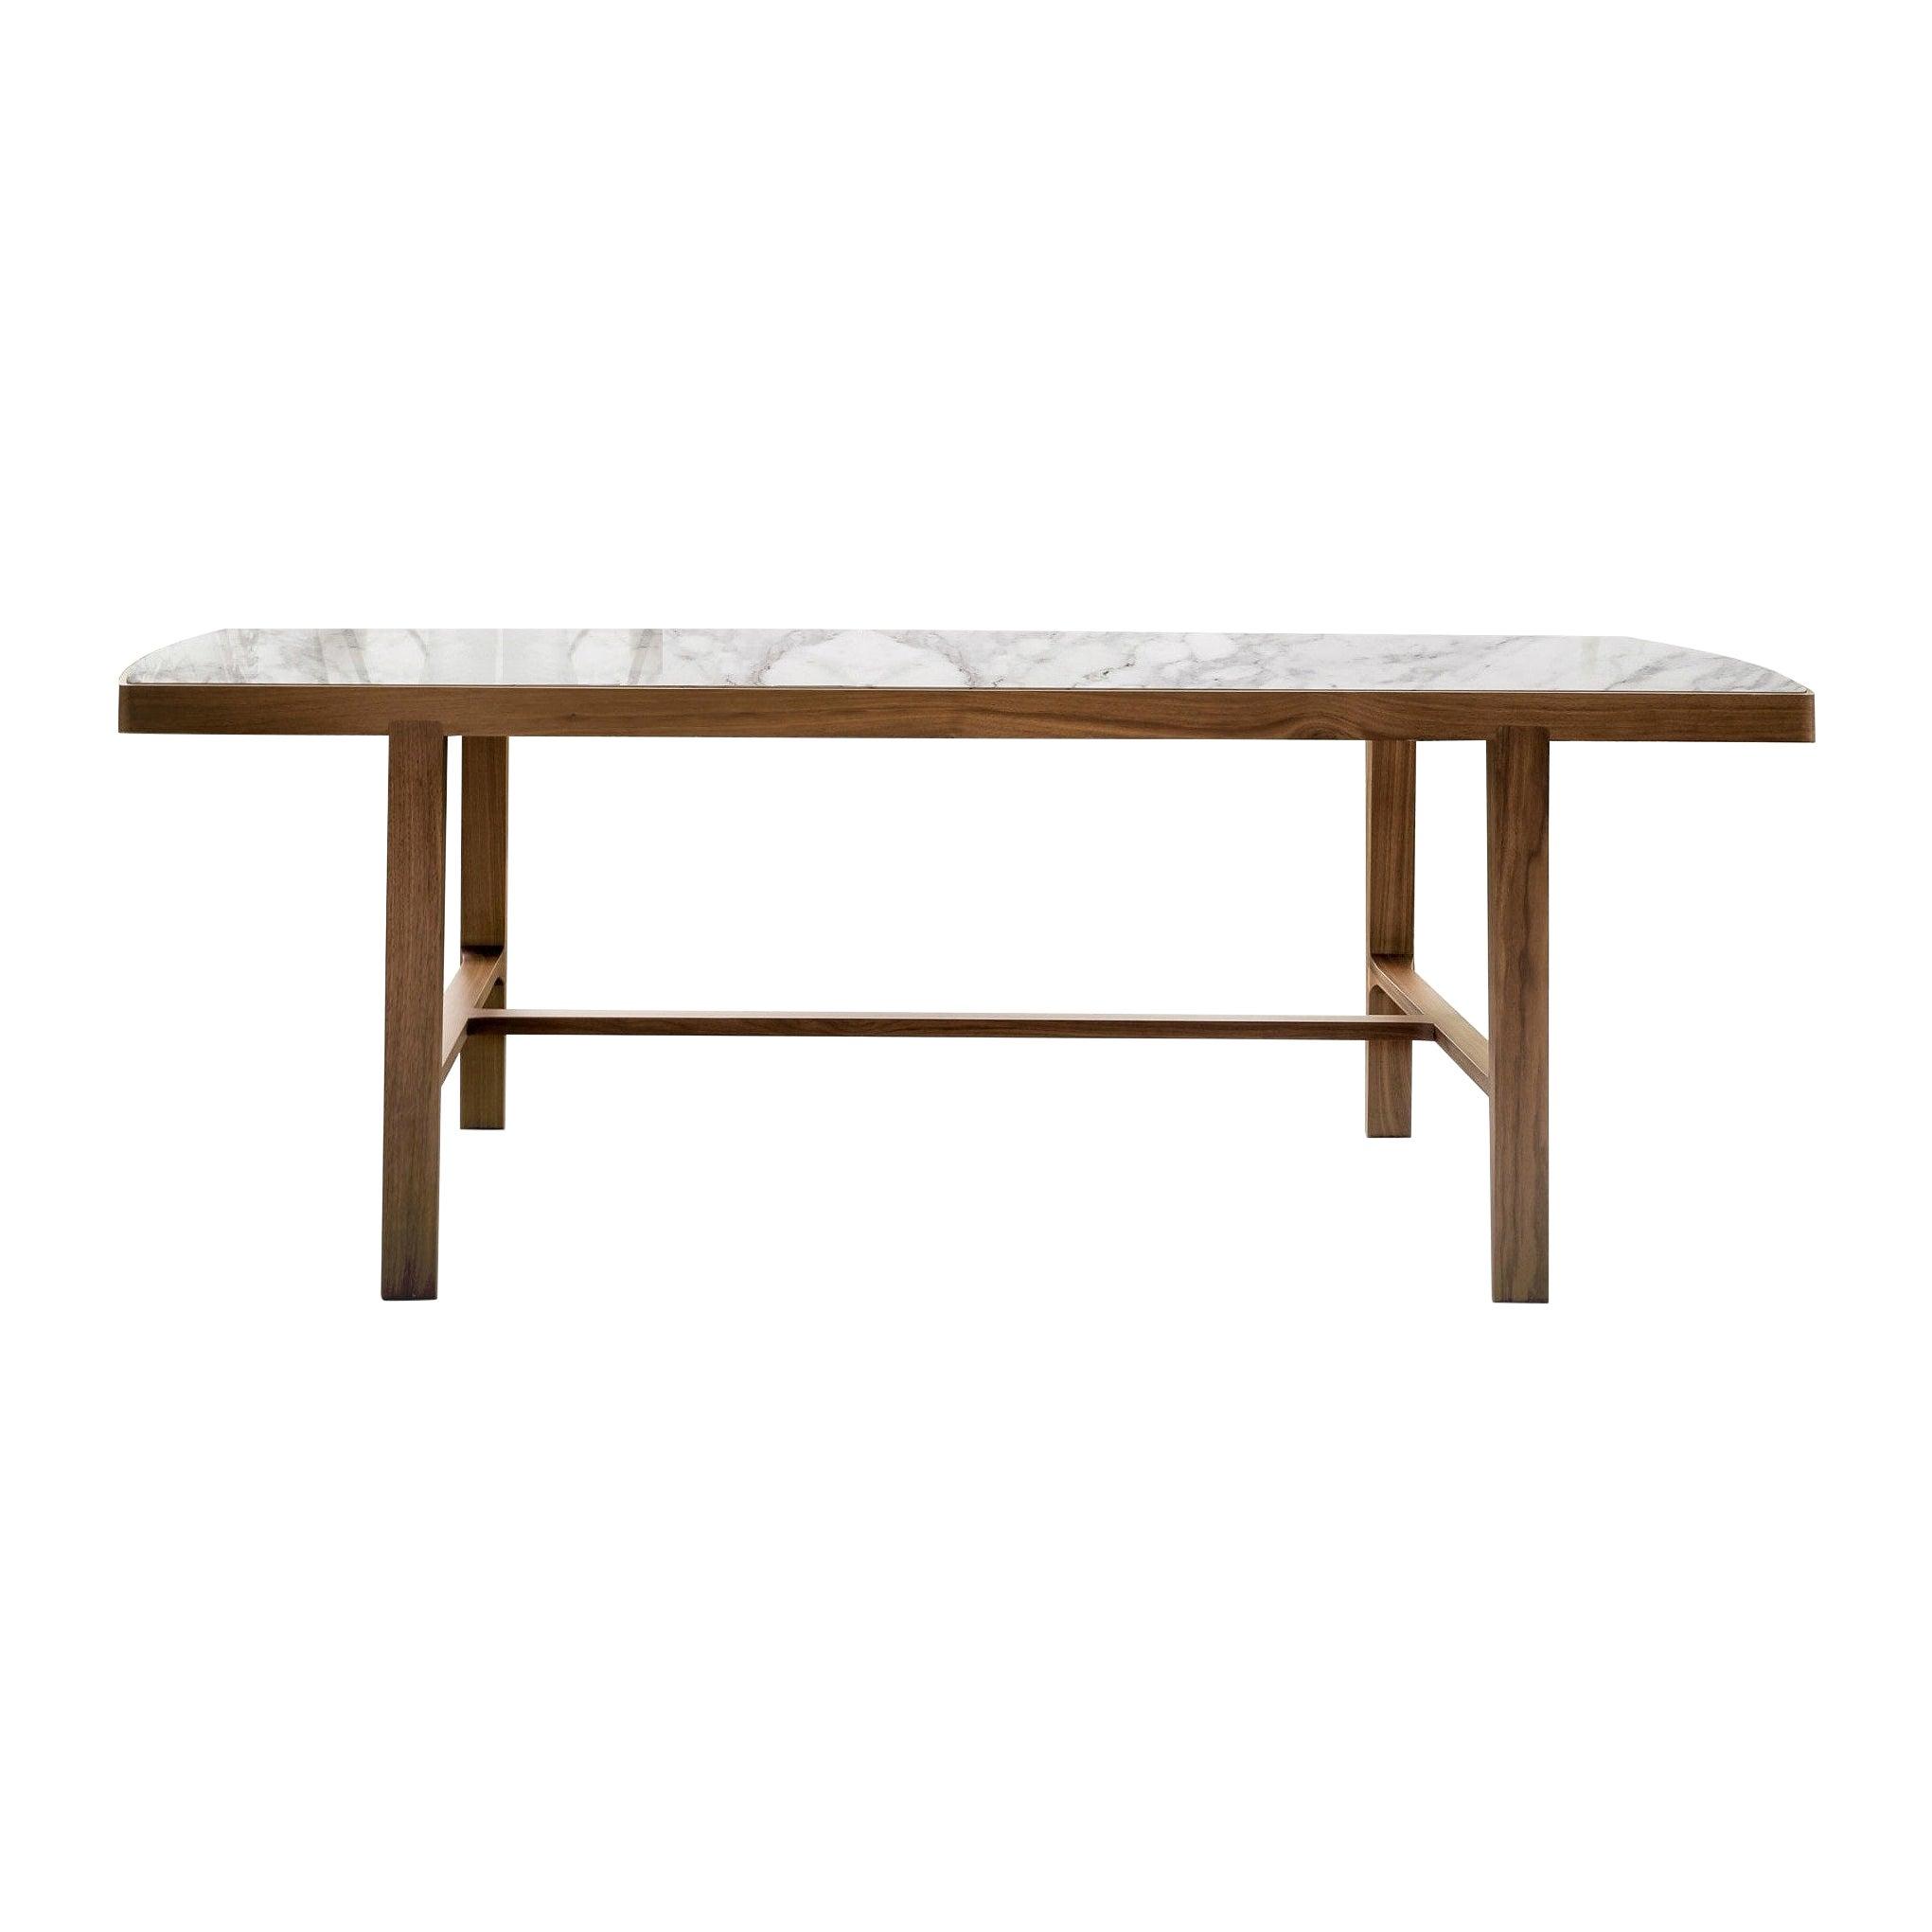 Handcrafted Italian Dining Table, Walnut Frame/White Marble